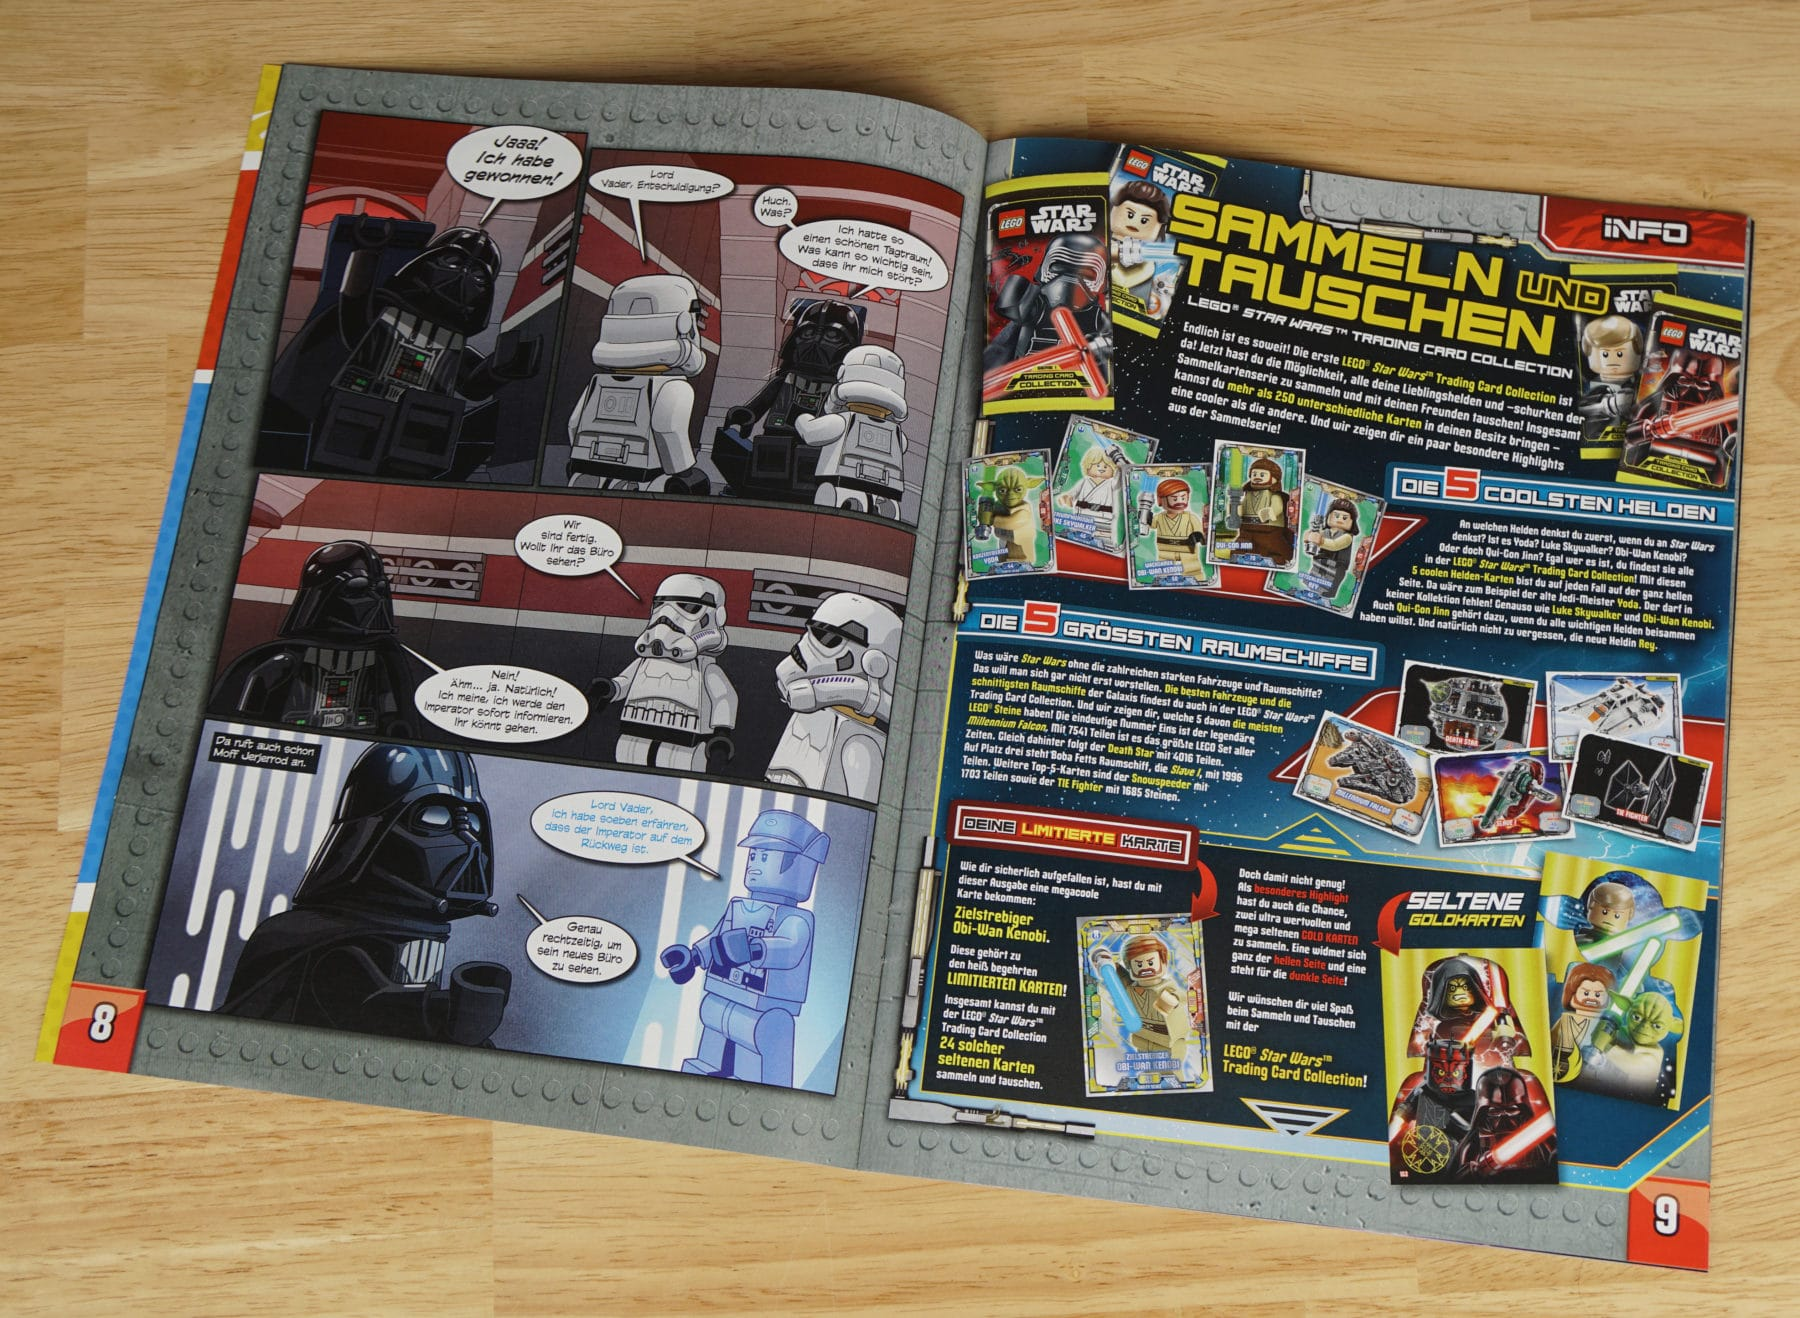 LEGO Star Wars Magazin Trading Card Collection Infos